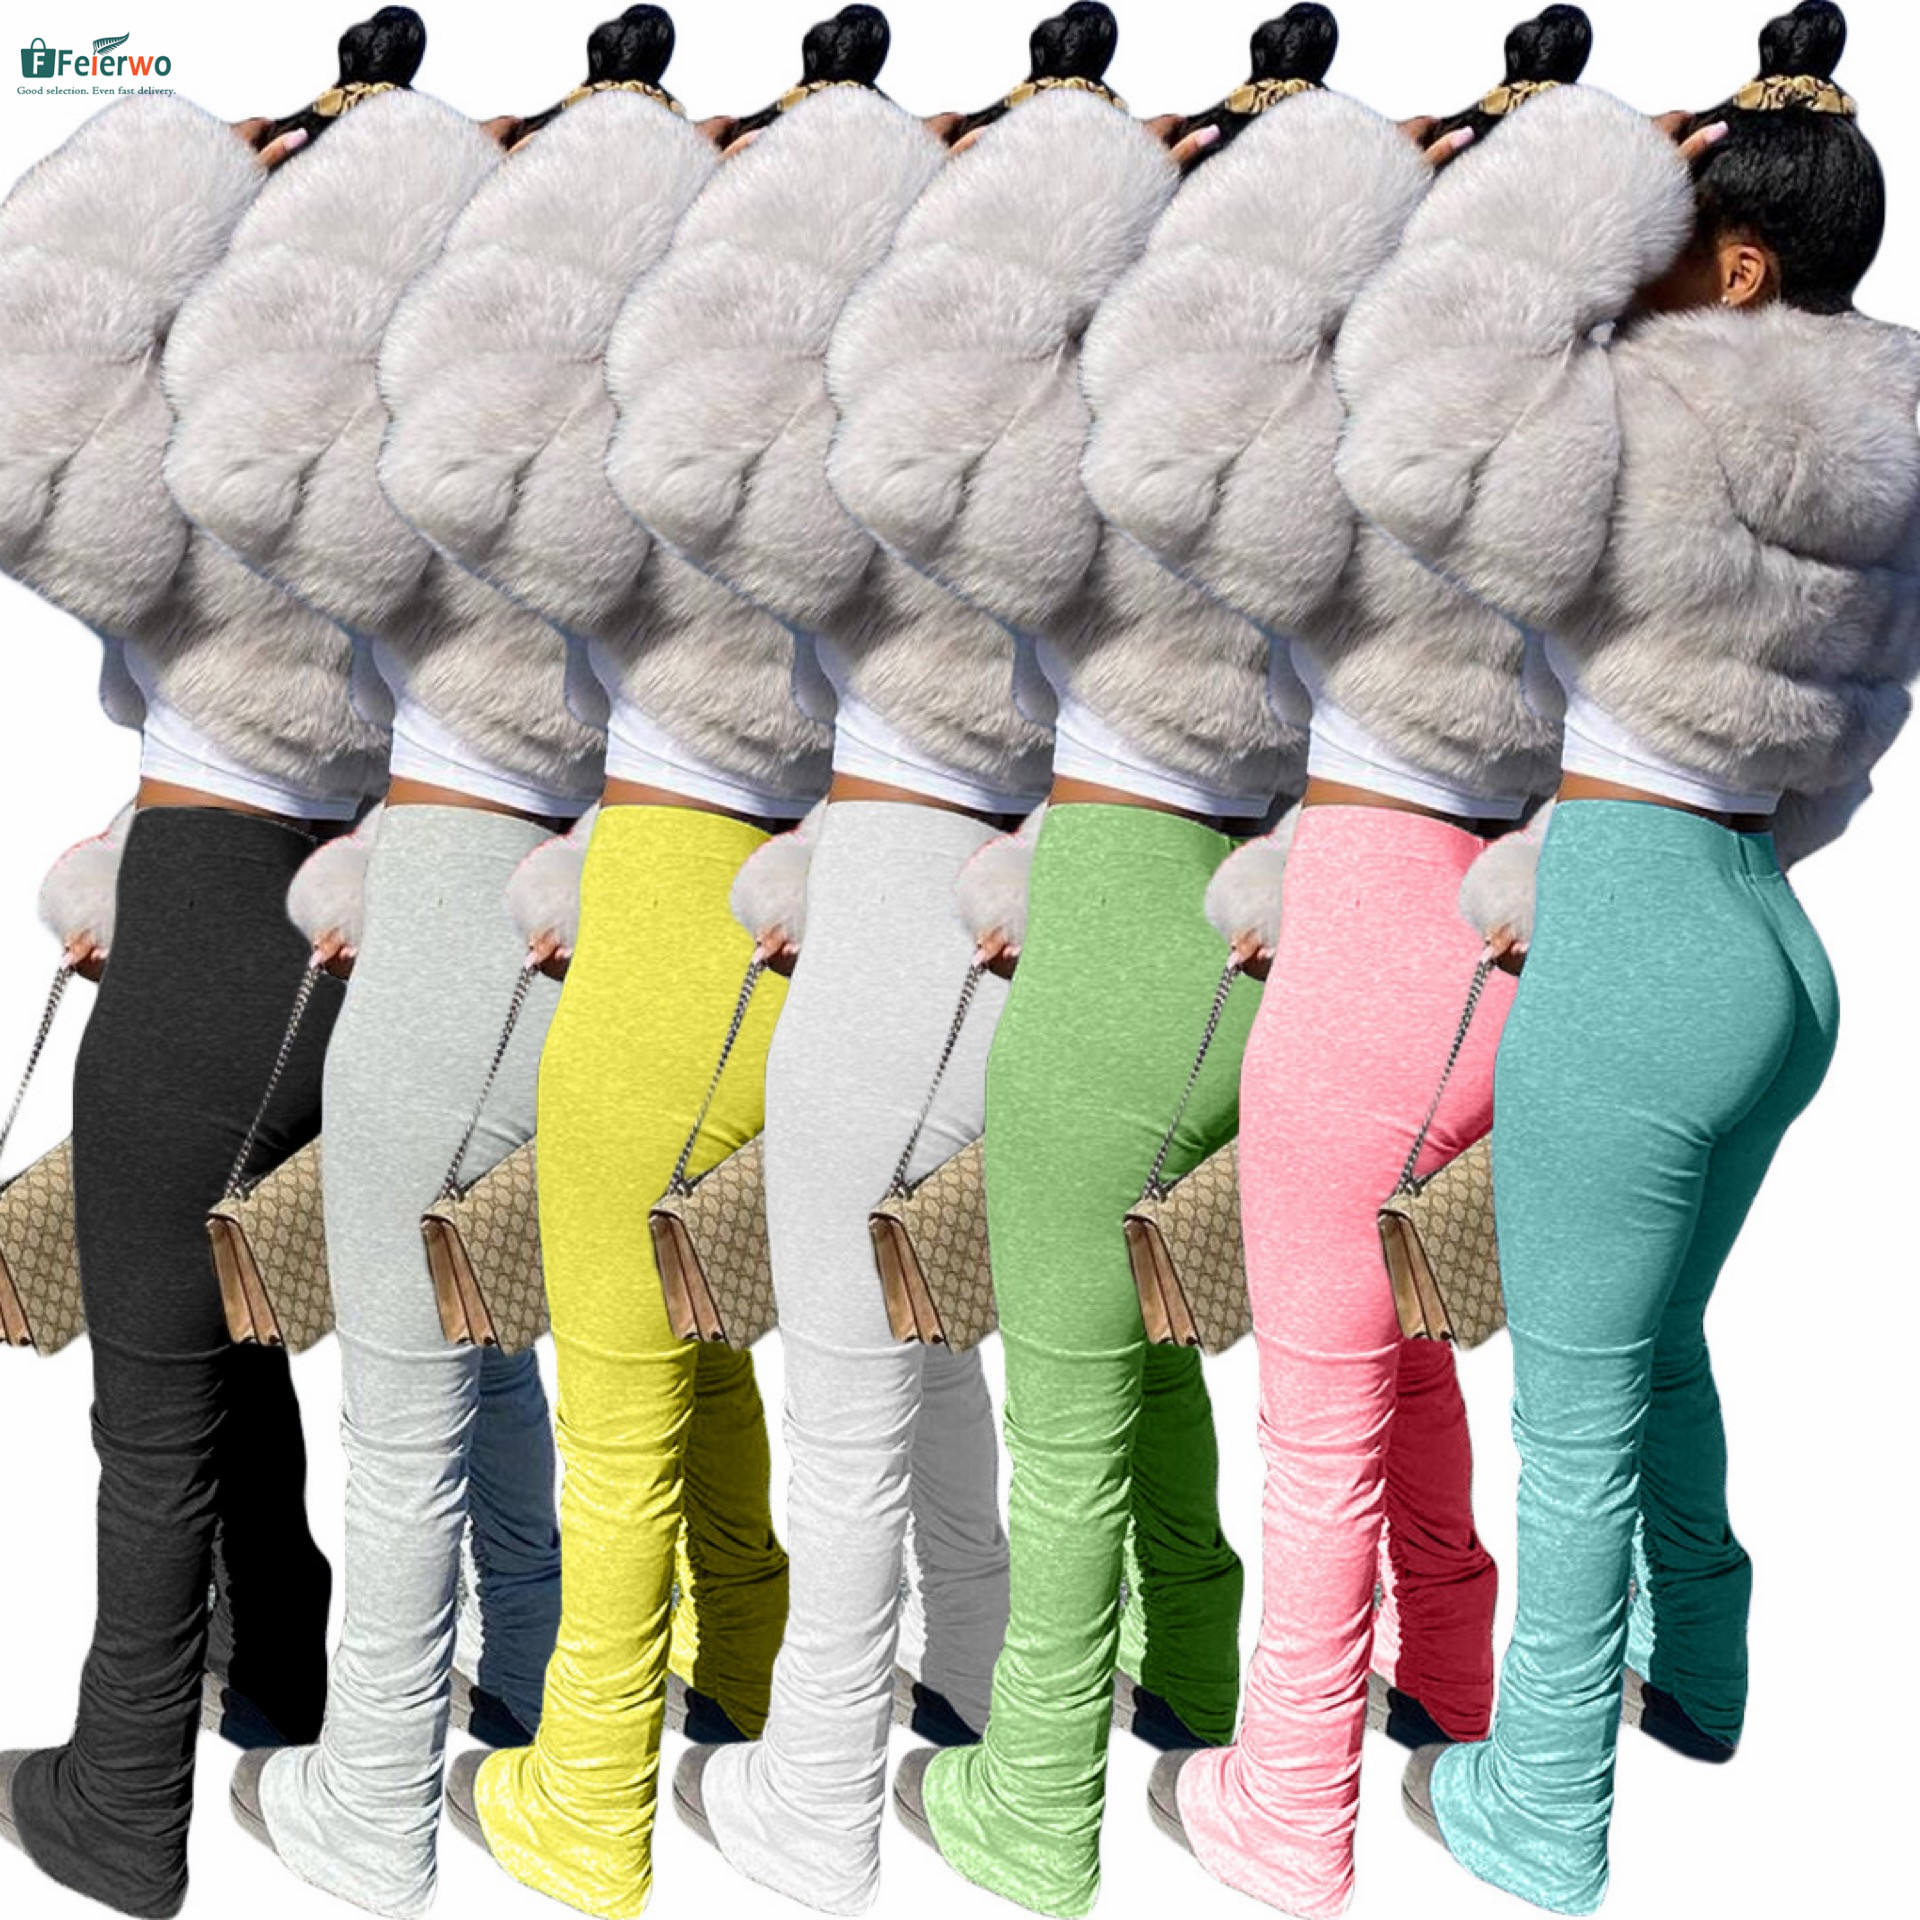 xs to 2xl Fashion Women Casual Mid Waist Pocket Drawstring Solid Pleated Ripped over size Flared Pants Stacked Leggings